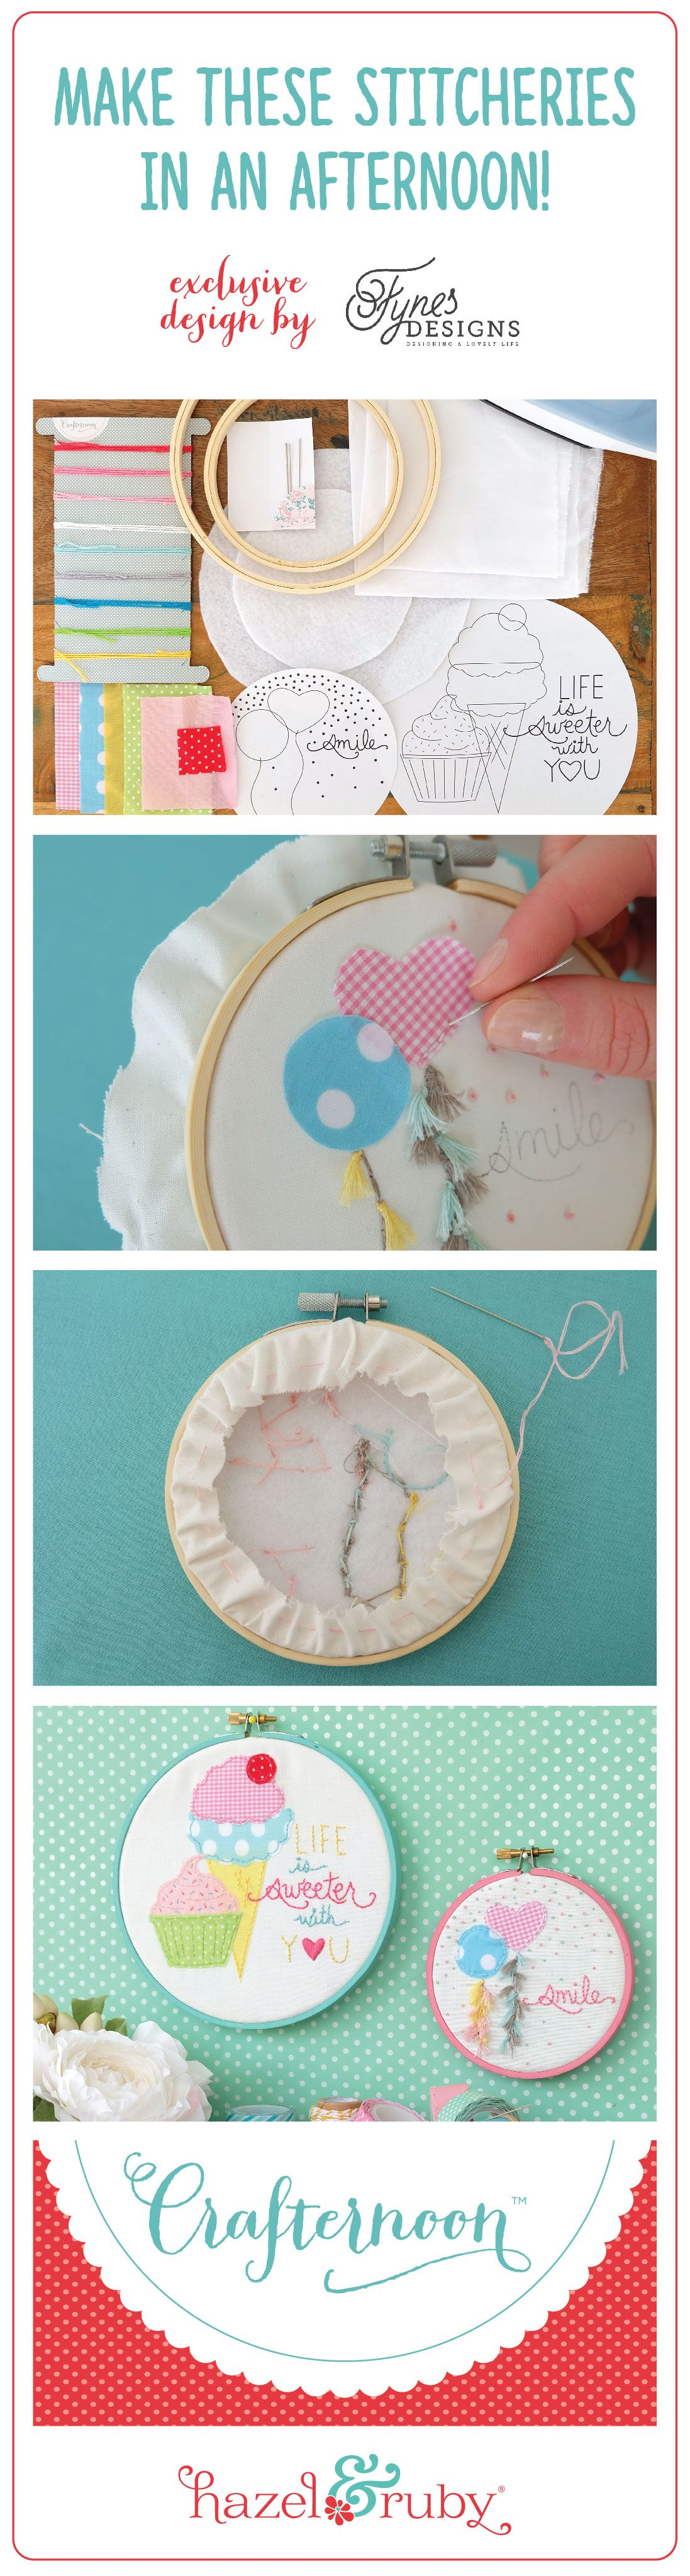 I have been wanting to do an embroidery hoop project for months now